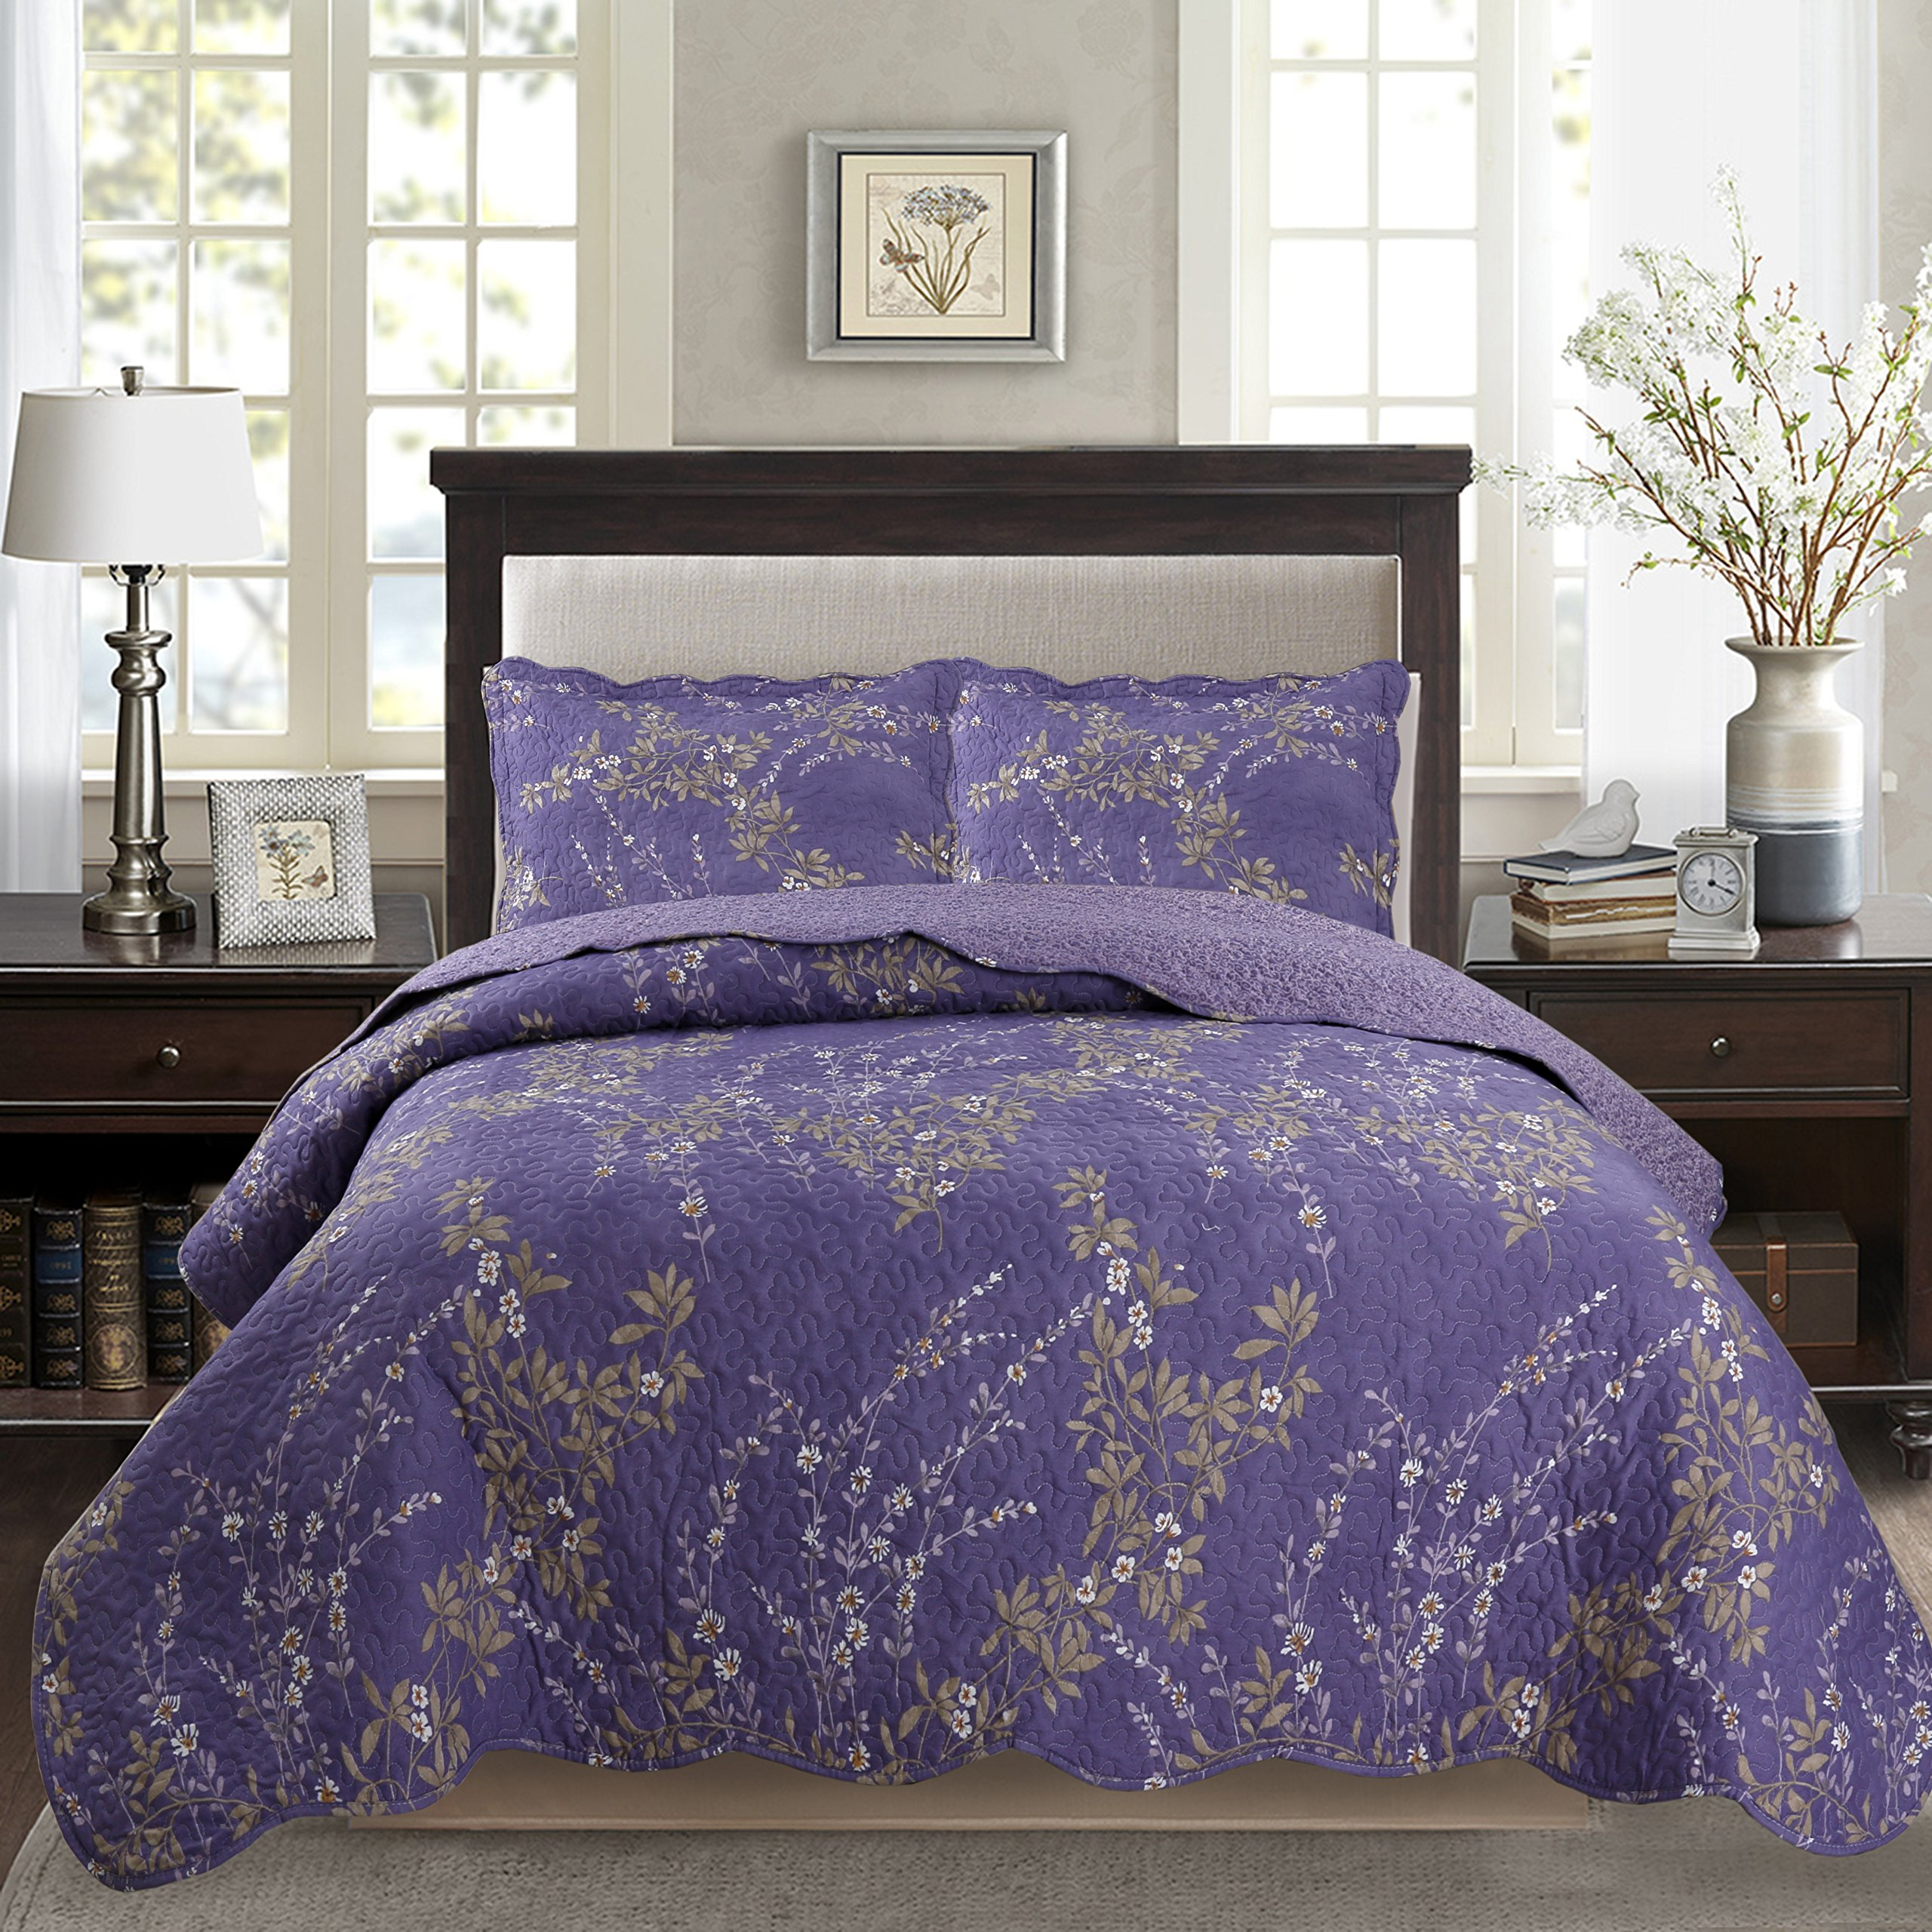 Kasentex Country-Chic Printed Pre-Washed Set. Microfiber Fabric Floral Design Quilt + 2 Shams, KING 104X90+20X36 X2, Purple